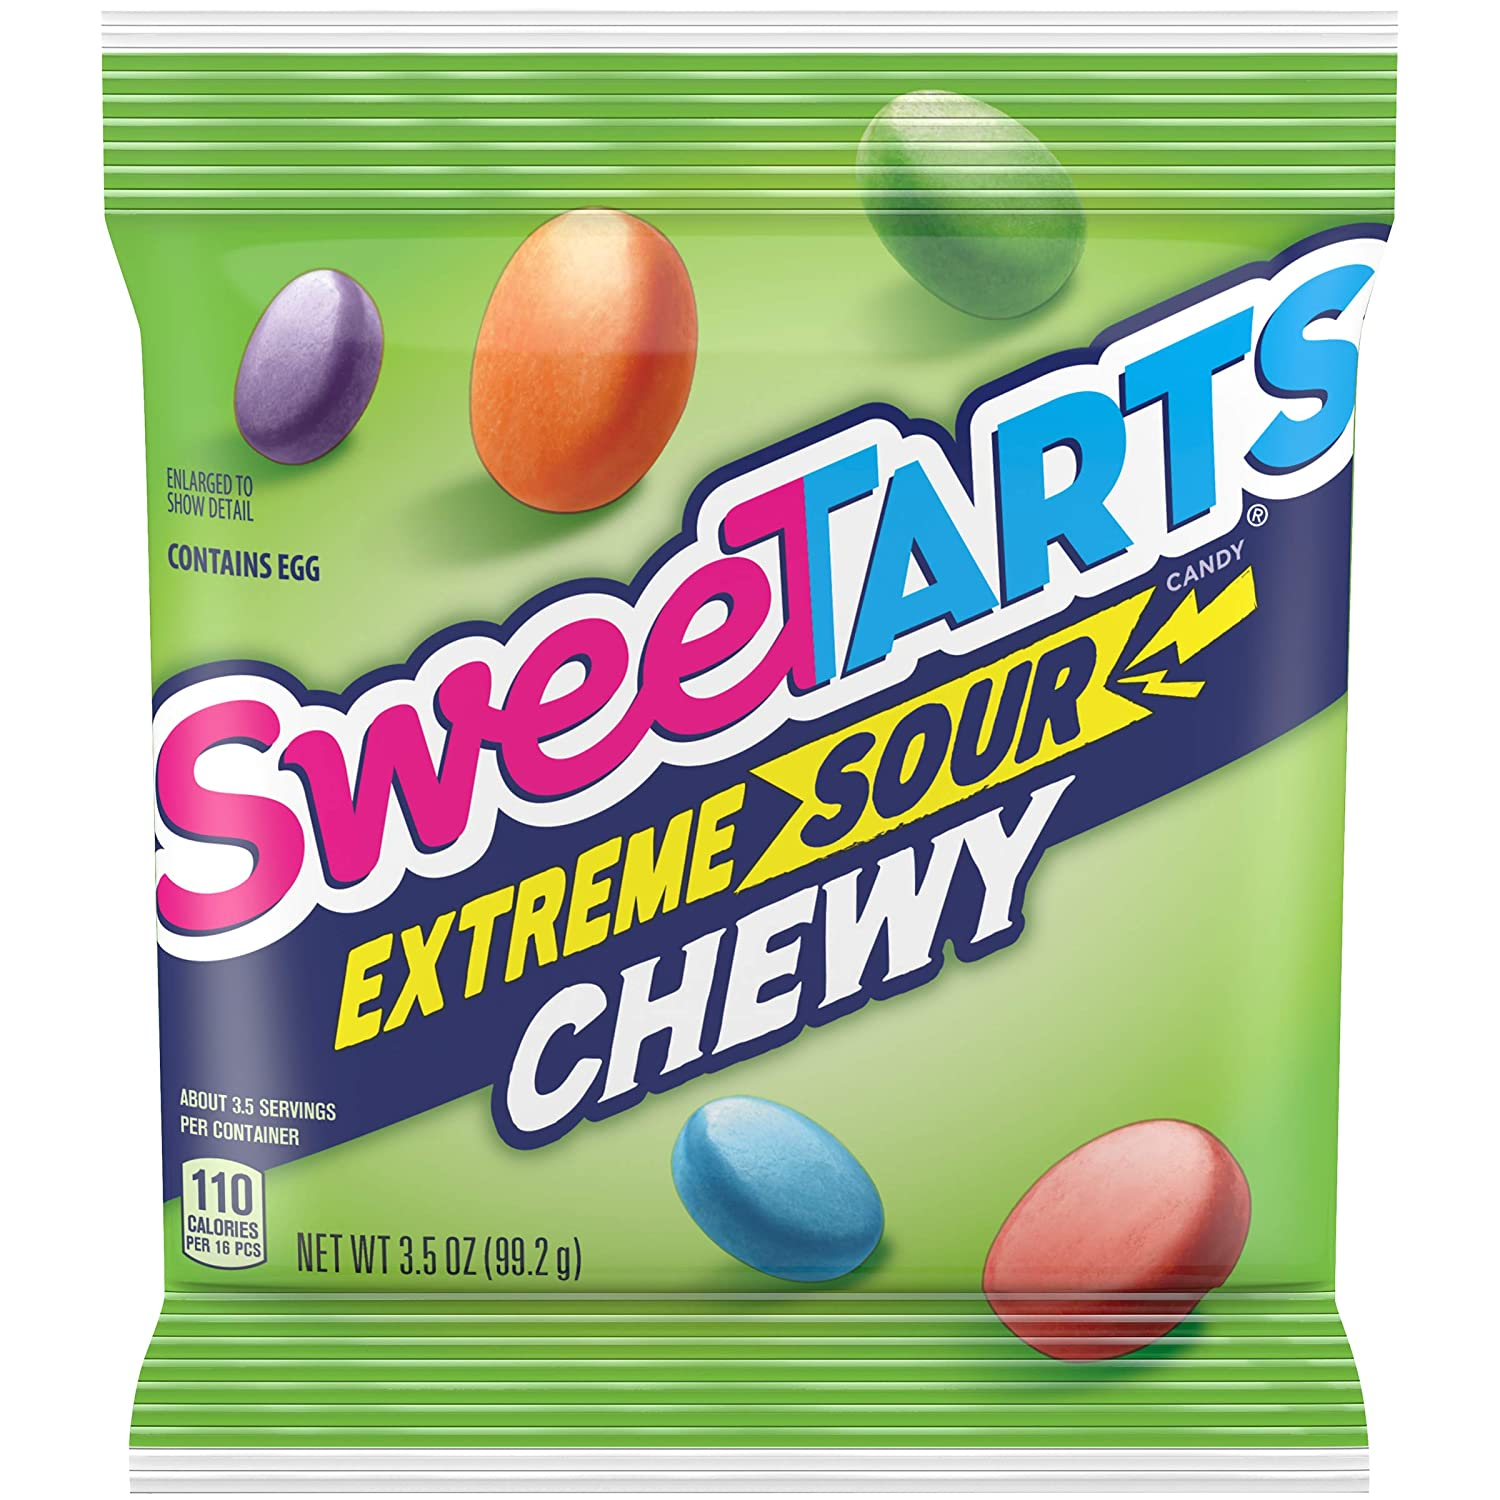 SweeTARTS Extreme Sour Chewy, 3.5 Ounce, Pack of 12 : Grocery & Gourmet Food